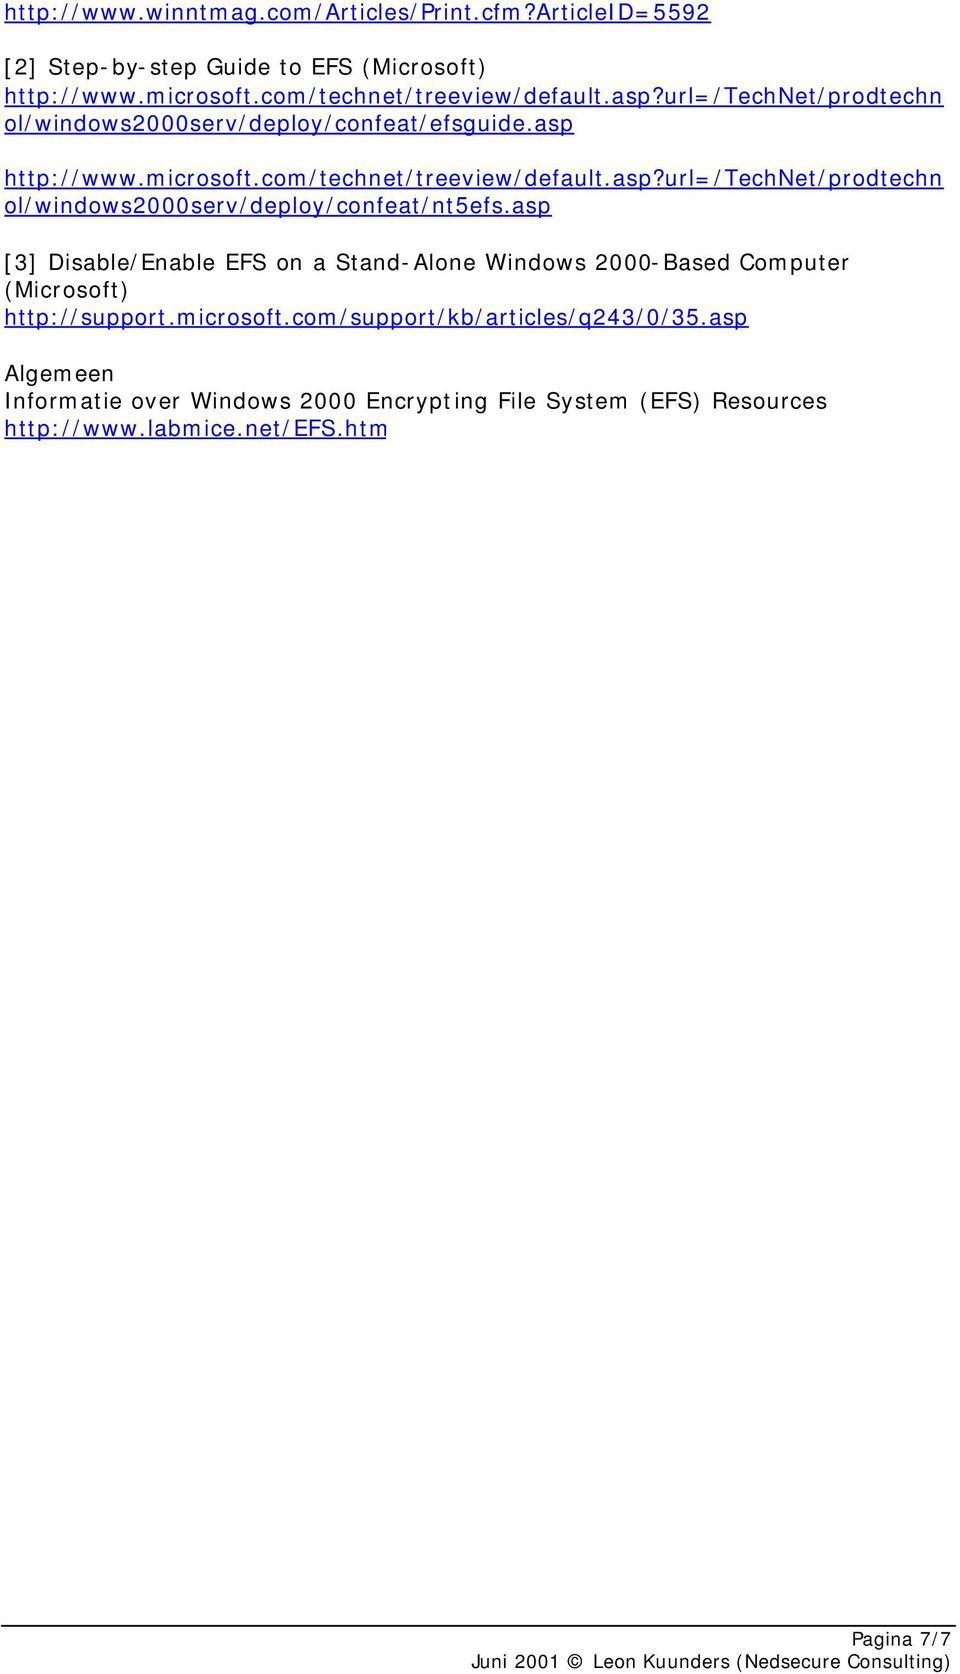 asp [3] Disable/Enable EFS on a Stand-Alone Windows 2000-Based Computer (Microsoft) http://support.microsoft.com/support/kb/articles/q243/0/35.